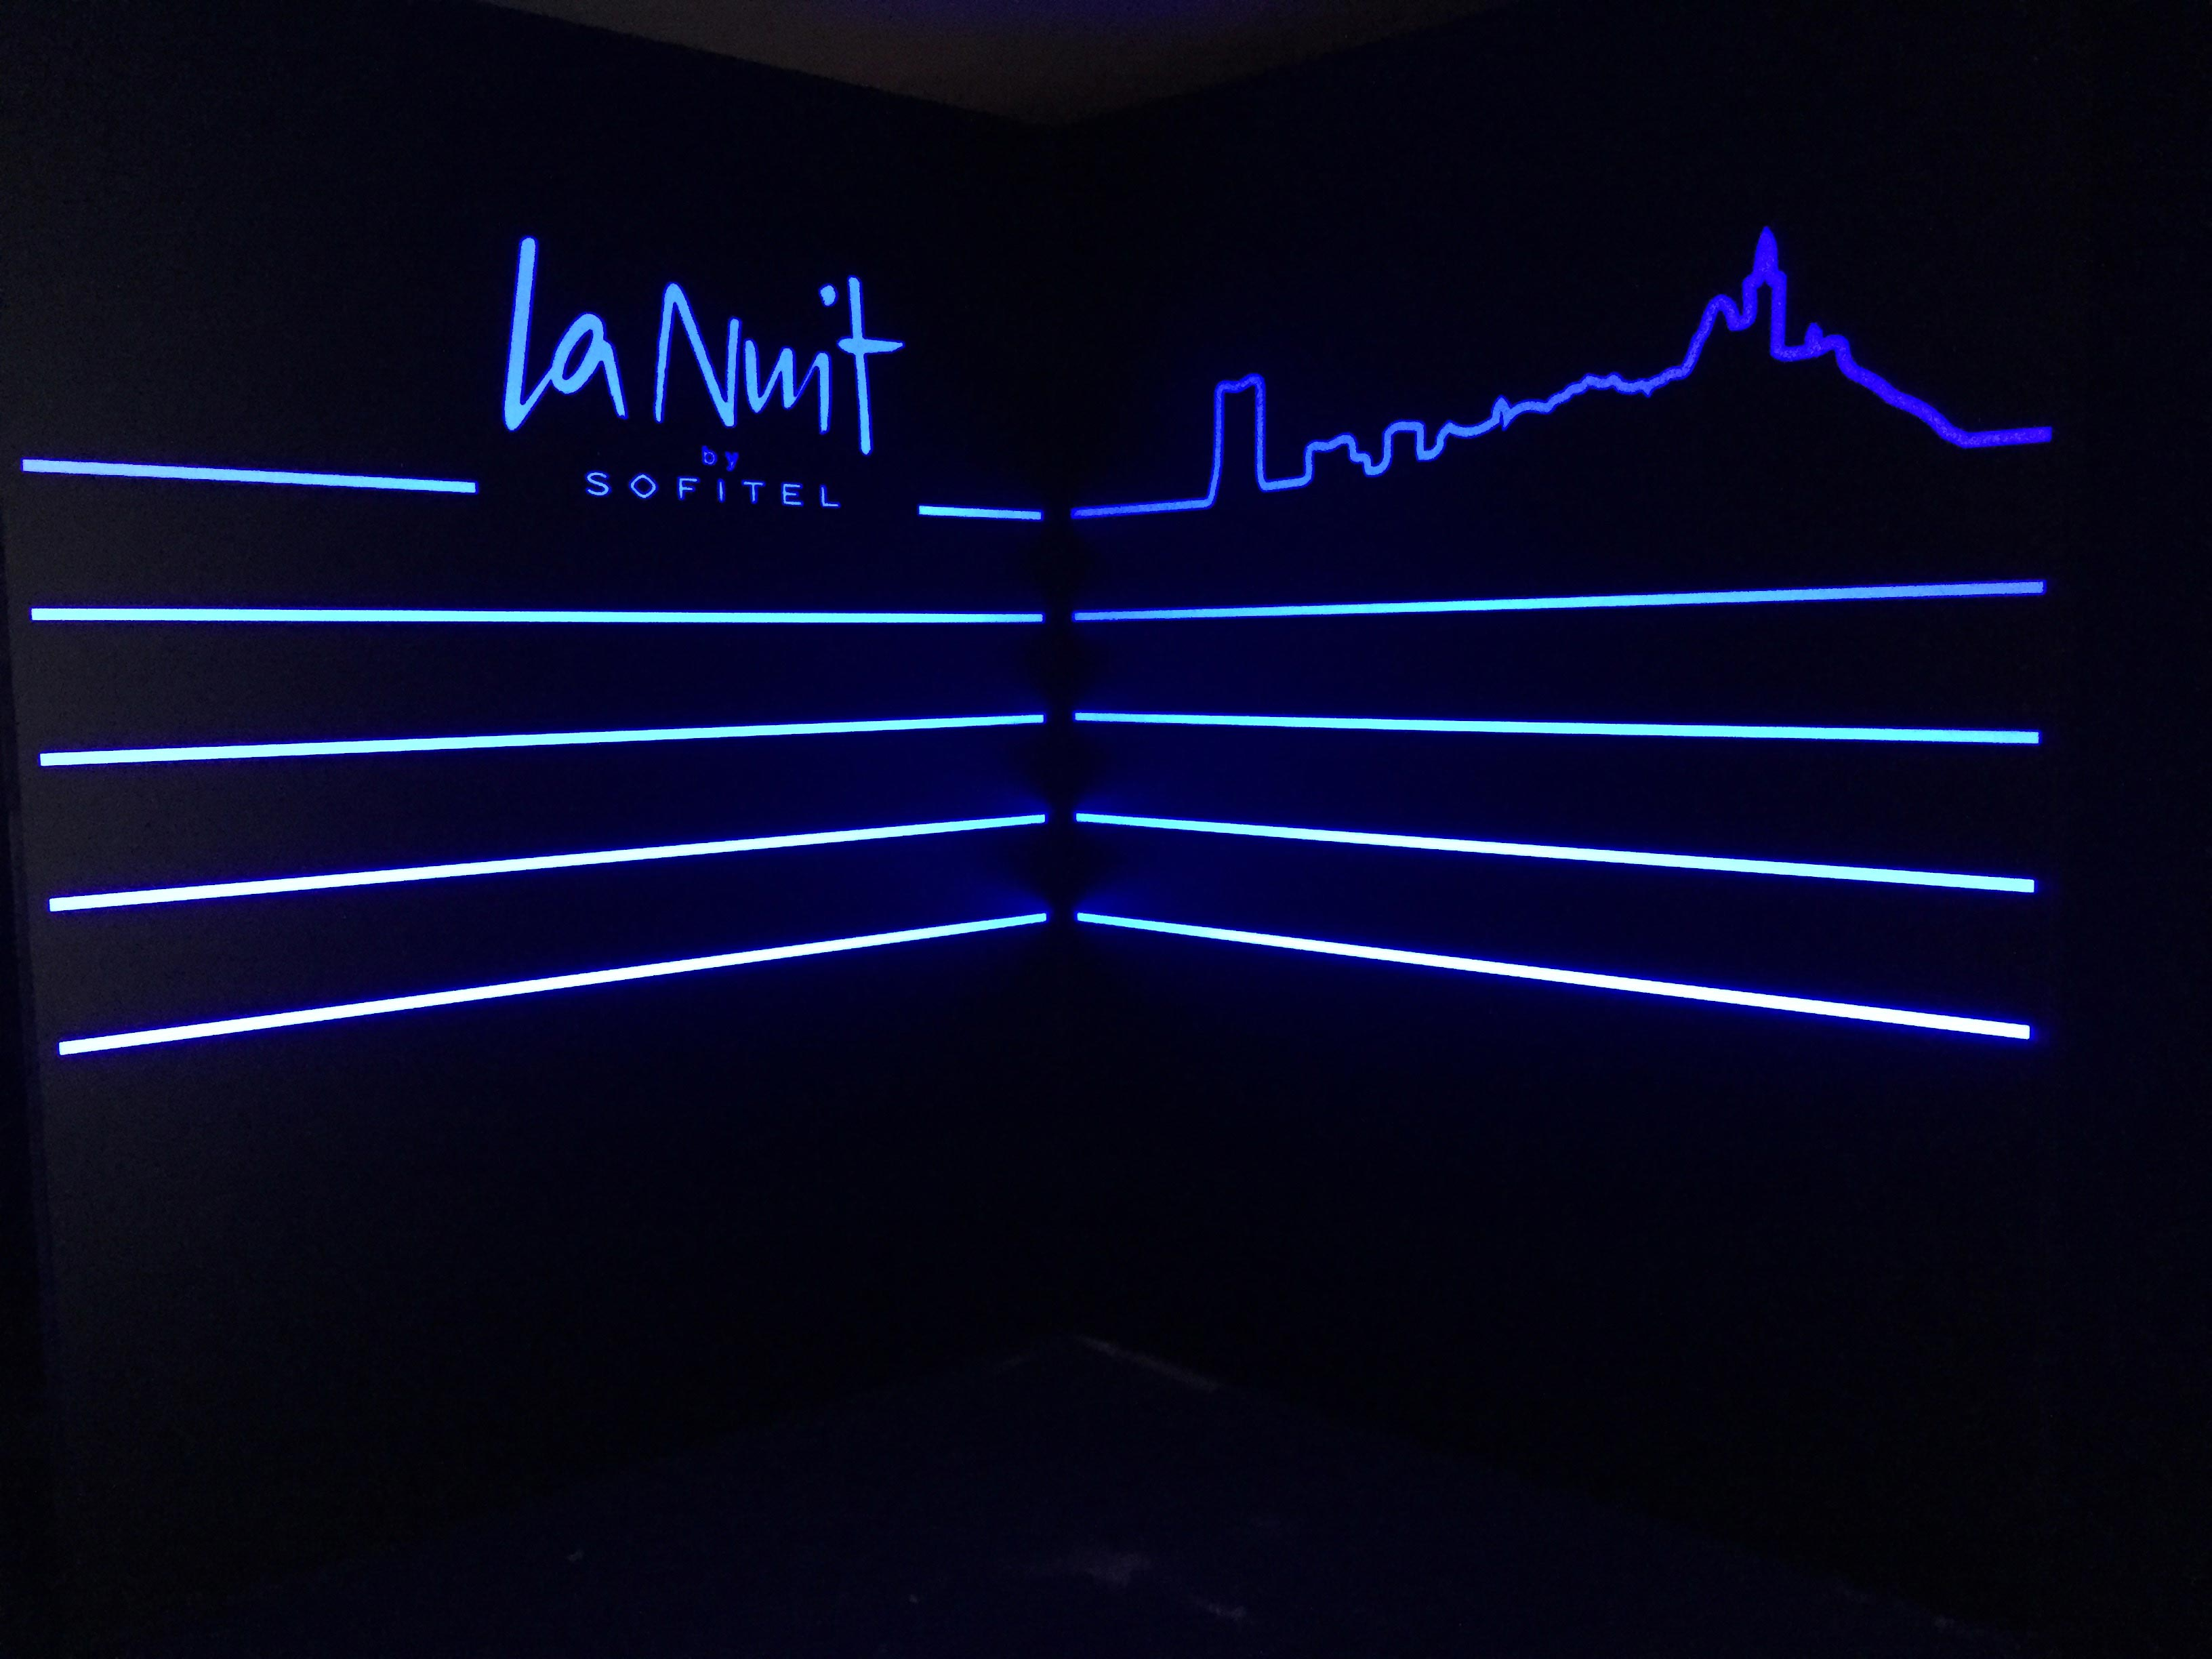 La Nuit by Sofitel-aucop-evenement-la-nuit-by-sofitel-Dantès-Skylounge-marseille-led